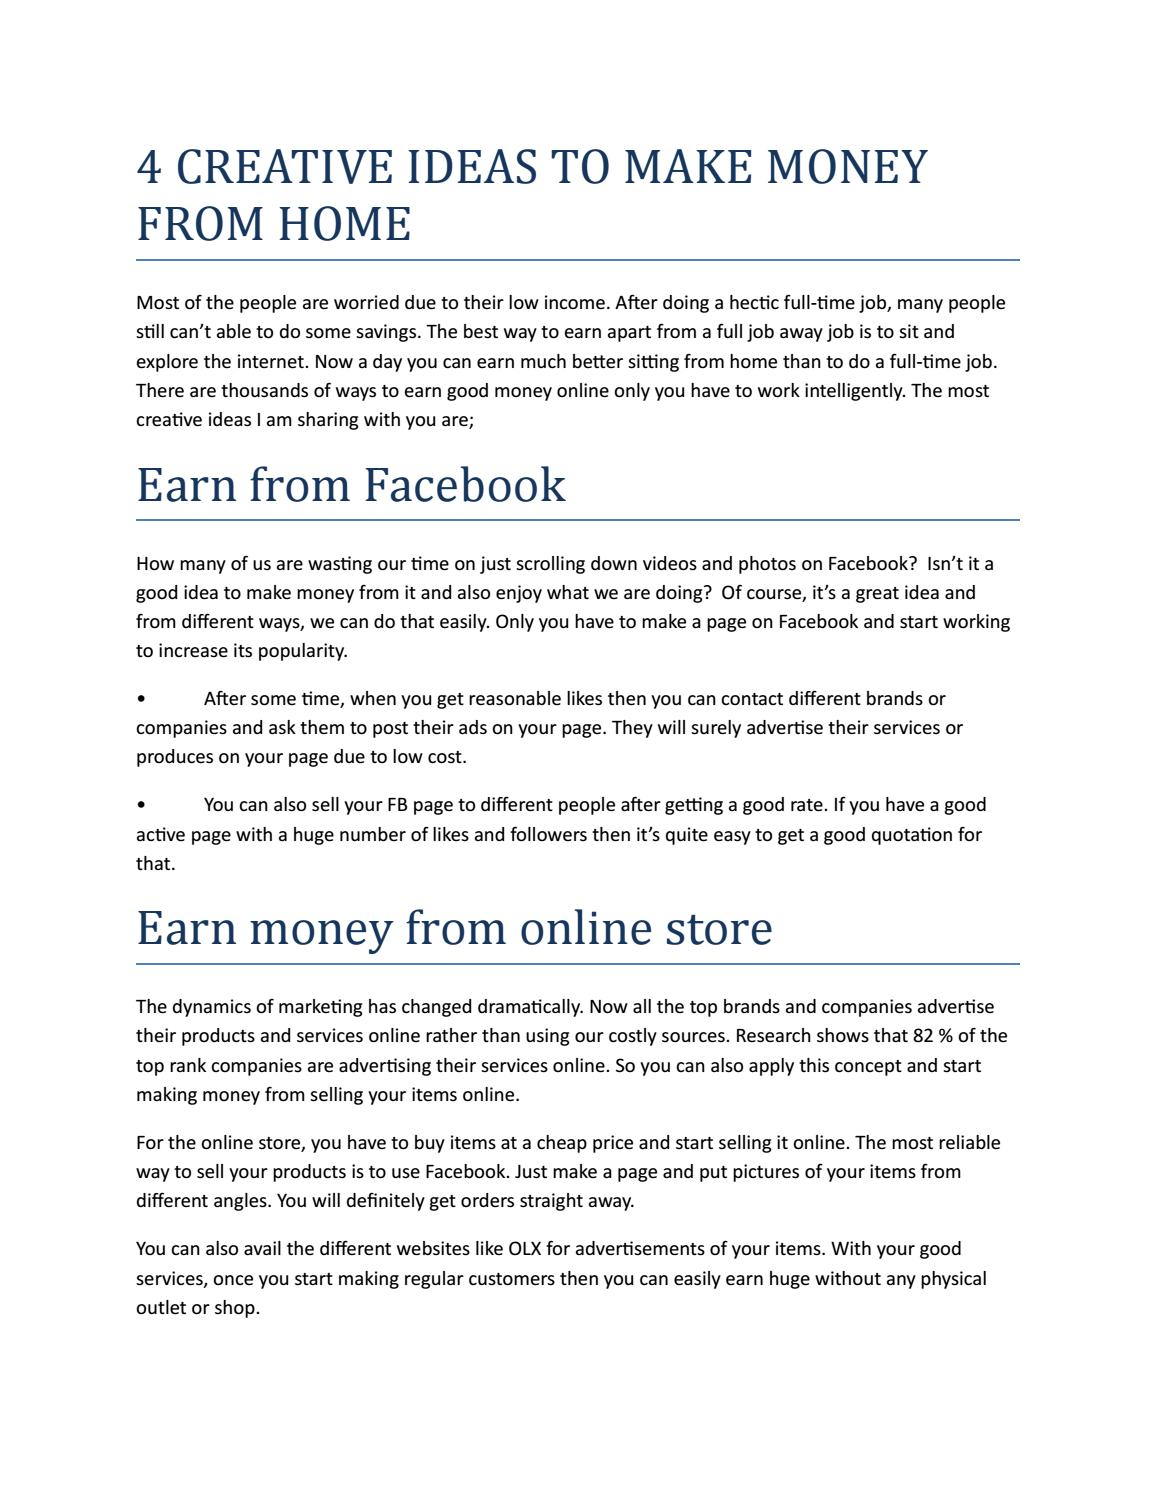 4 creative ideas to make money from home by Game Guardian - issuu